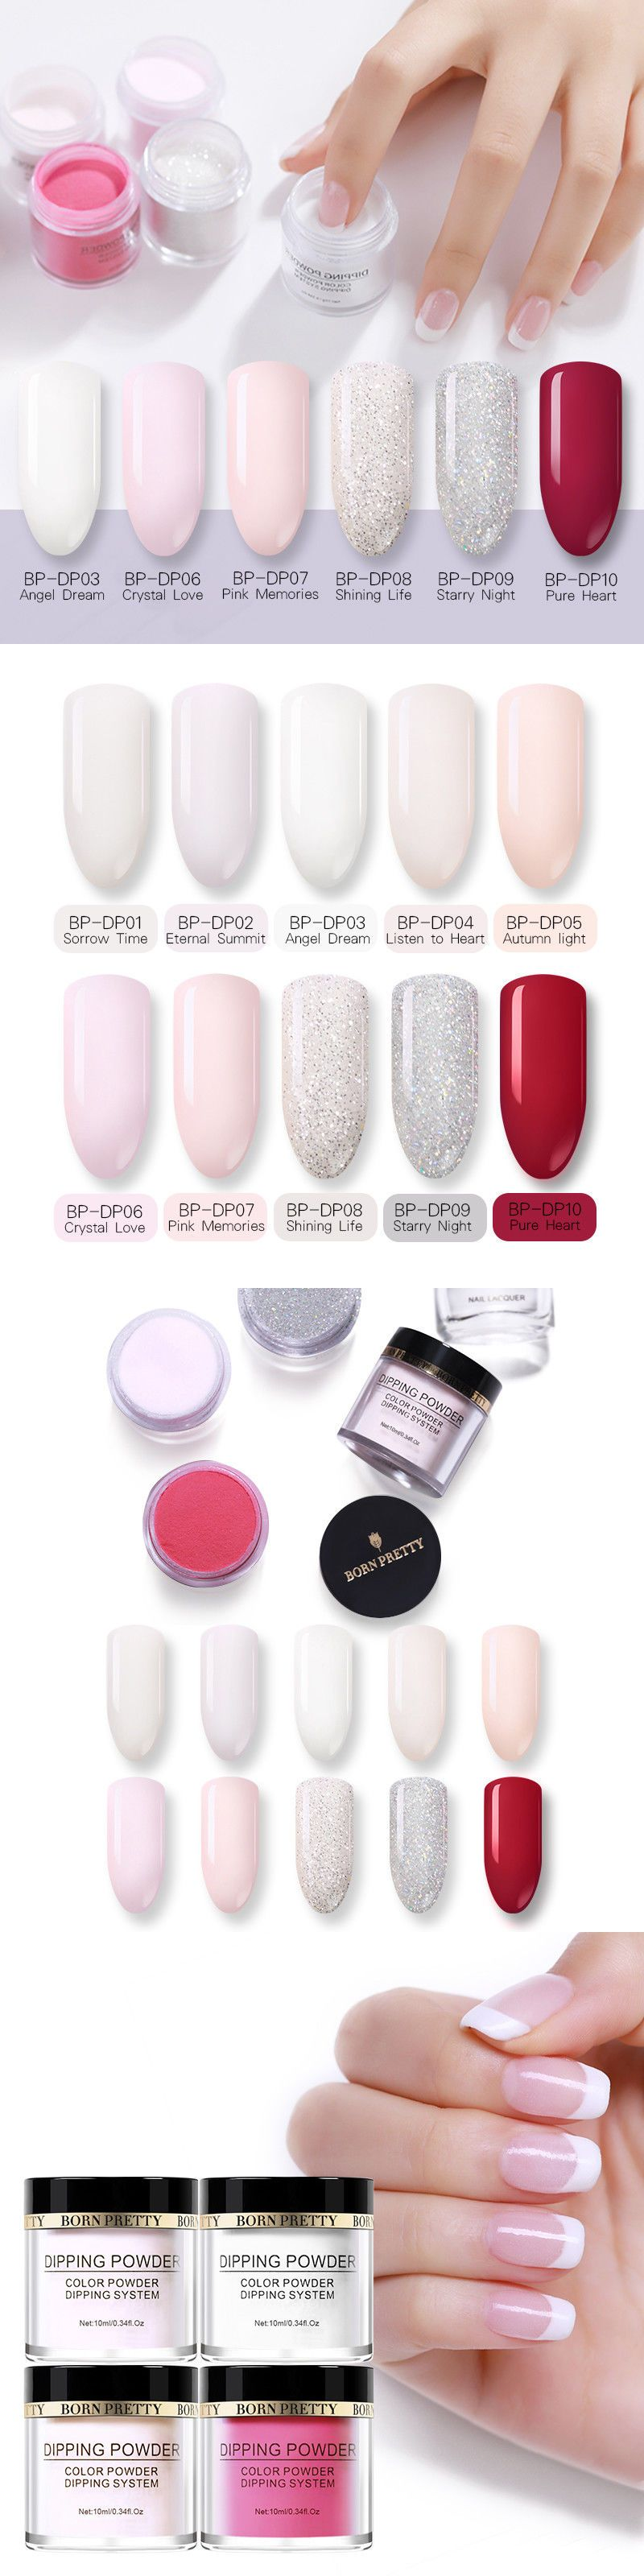 Acrylic Powders And Liquids 182105 Born Pretty Nail Dipping Powder Color Starter Kit No Smell Uv It Now Only 12 49 On Ebay